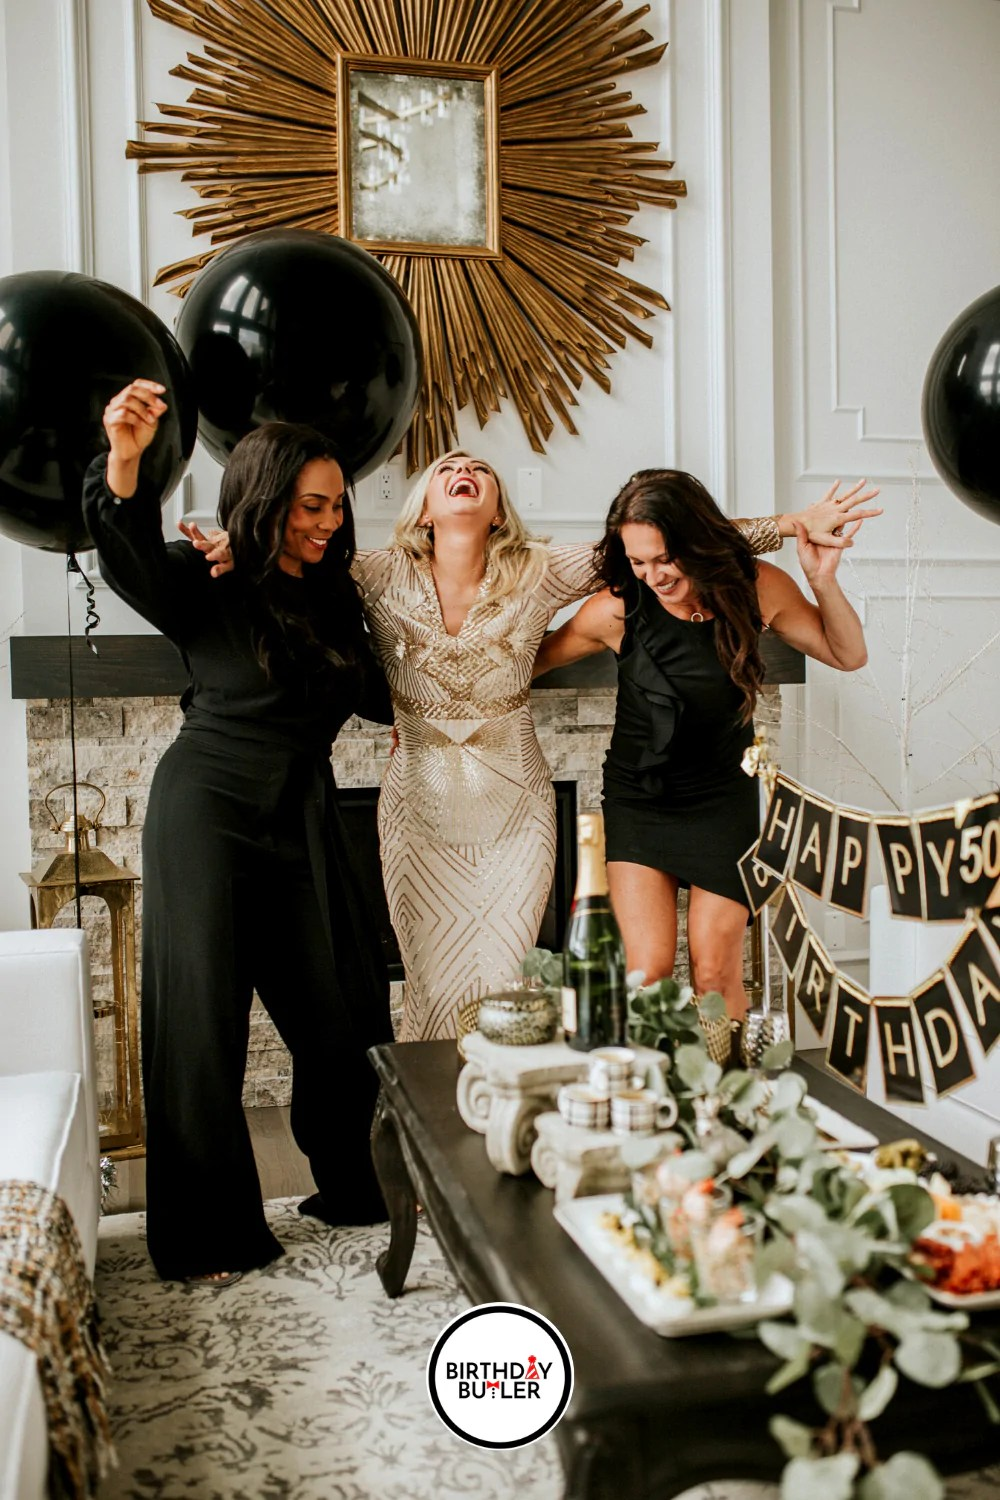 Part 2 Of 2 The Complete Guide For Planning A Woman S 50th Birthday Birthday Butler